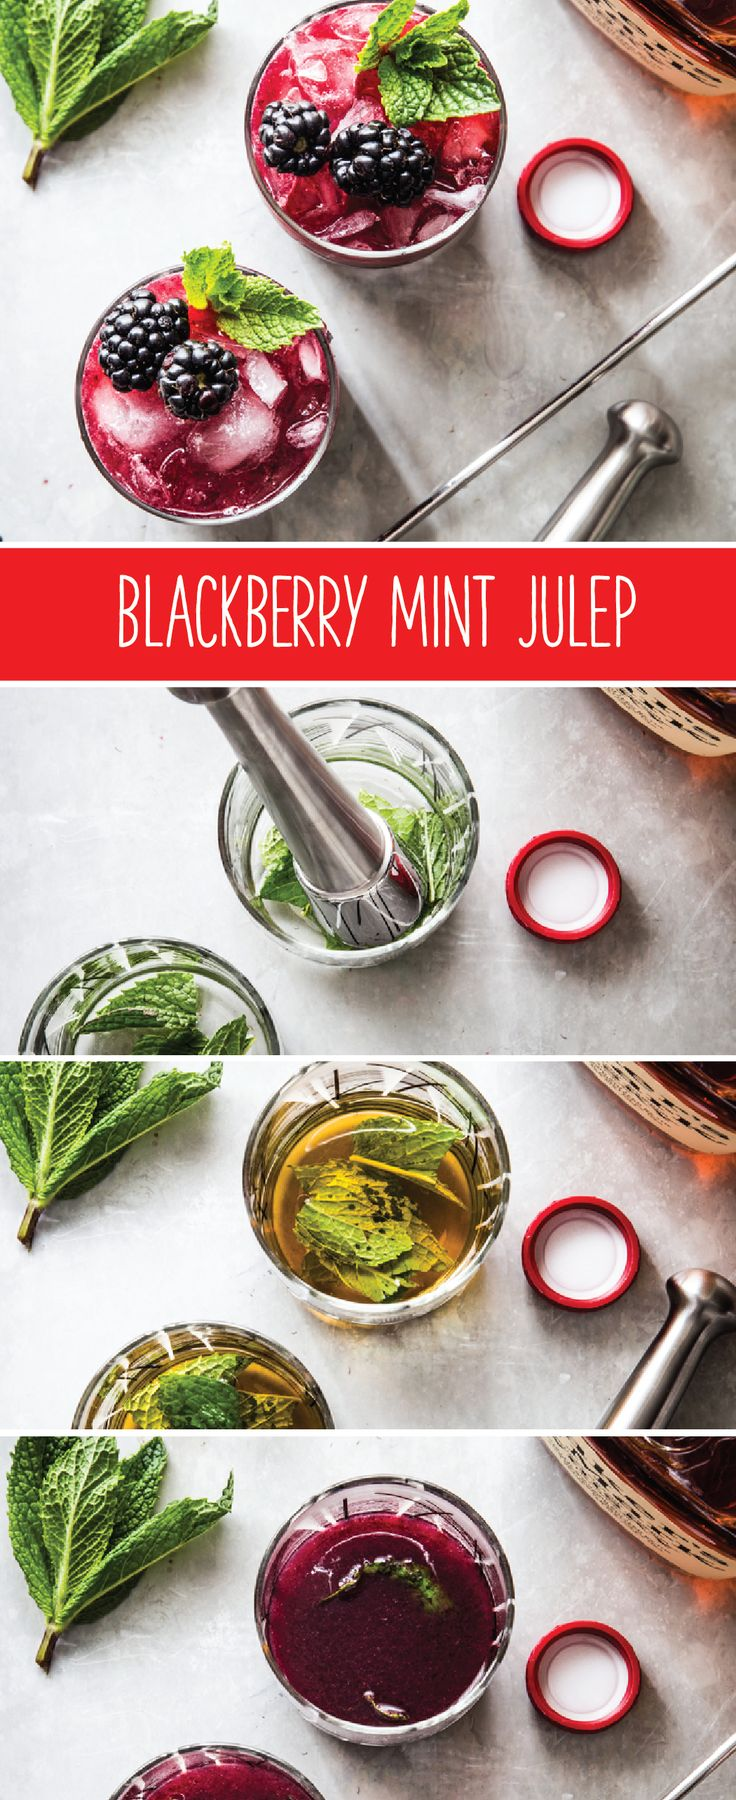 Don't you just love it when you can put a twist to a classic southern cocktail? Us too! That's why this recipe for Blackberry Mint Julep is one of our favorite fruity mixed drinks.